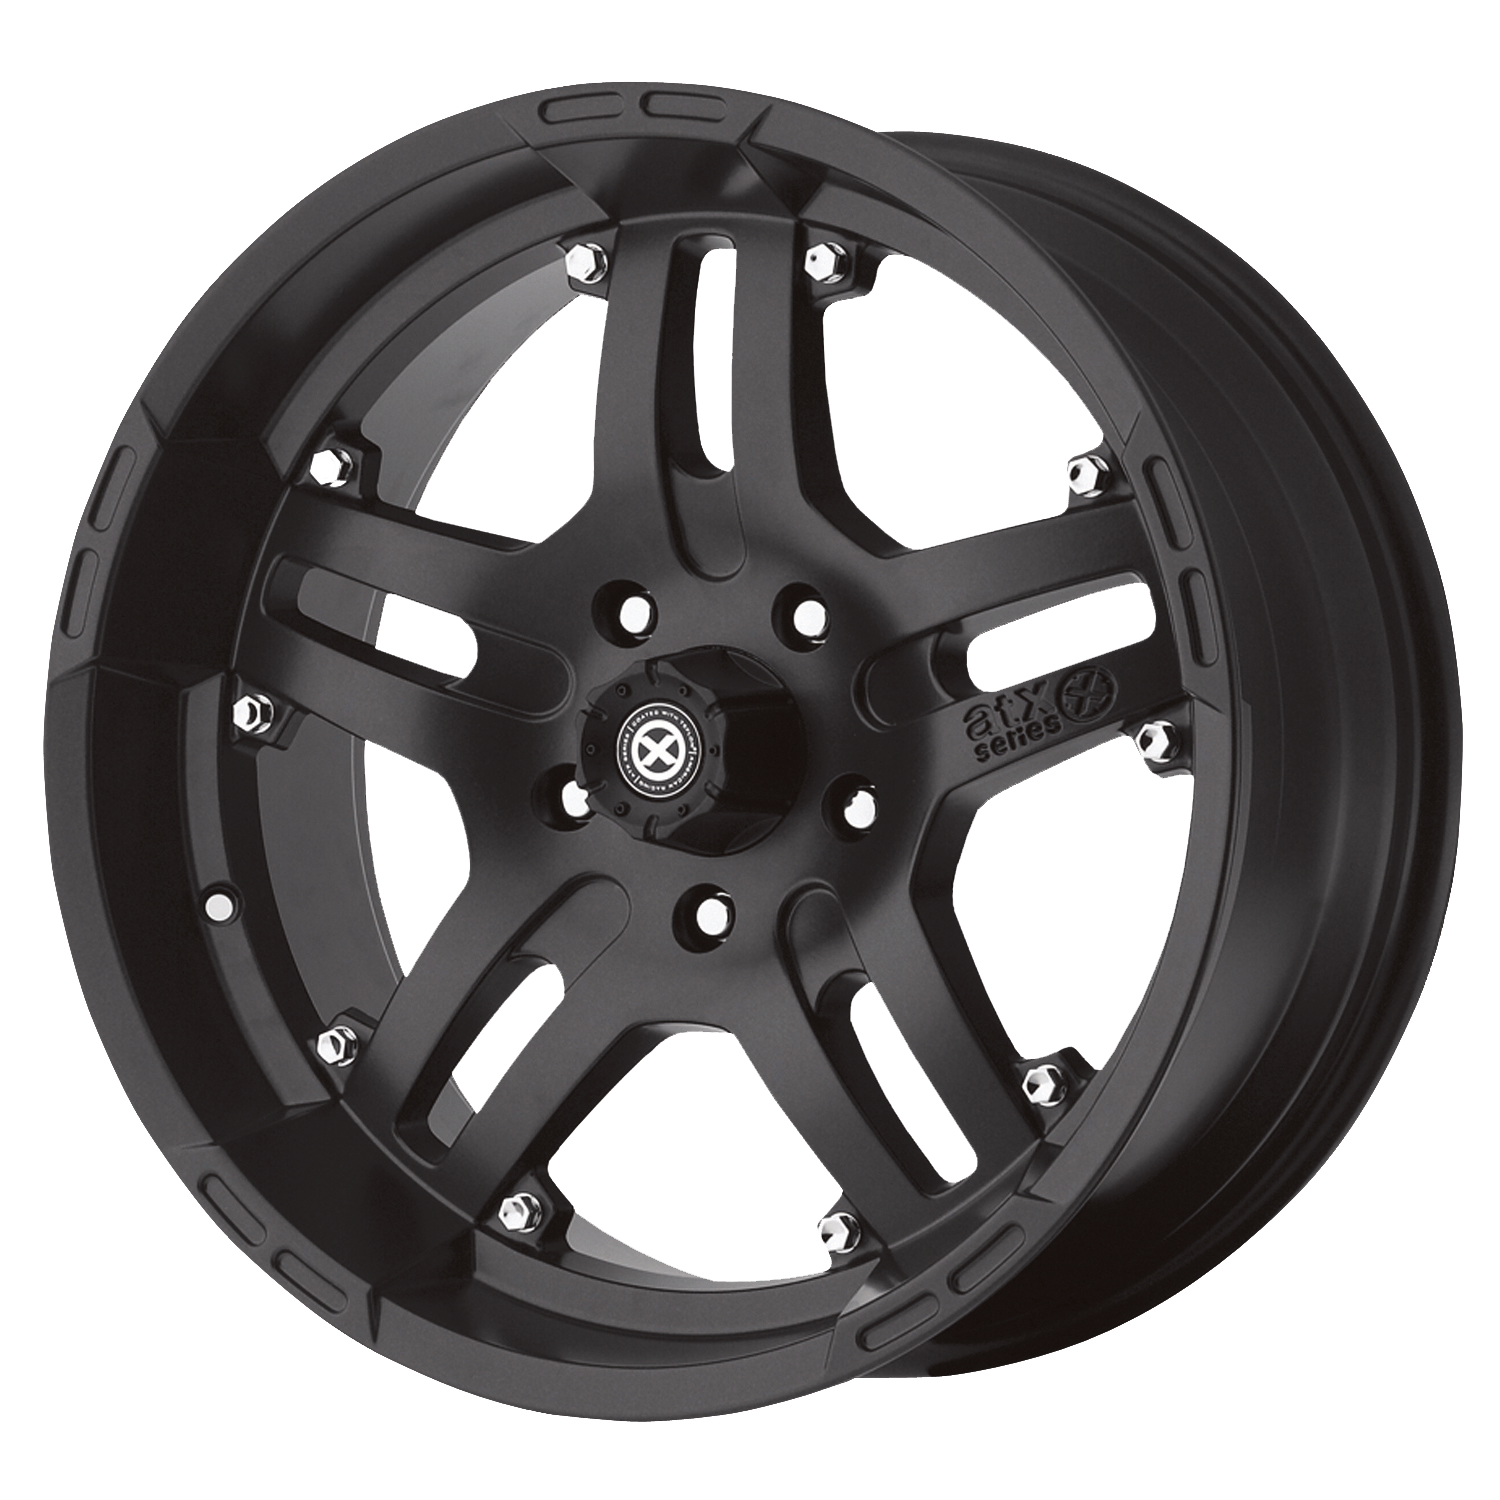 ATX Series Offroad Wheels ARTILLERY Cast Iron Black